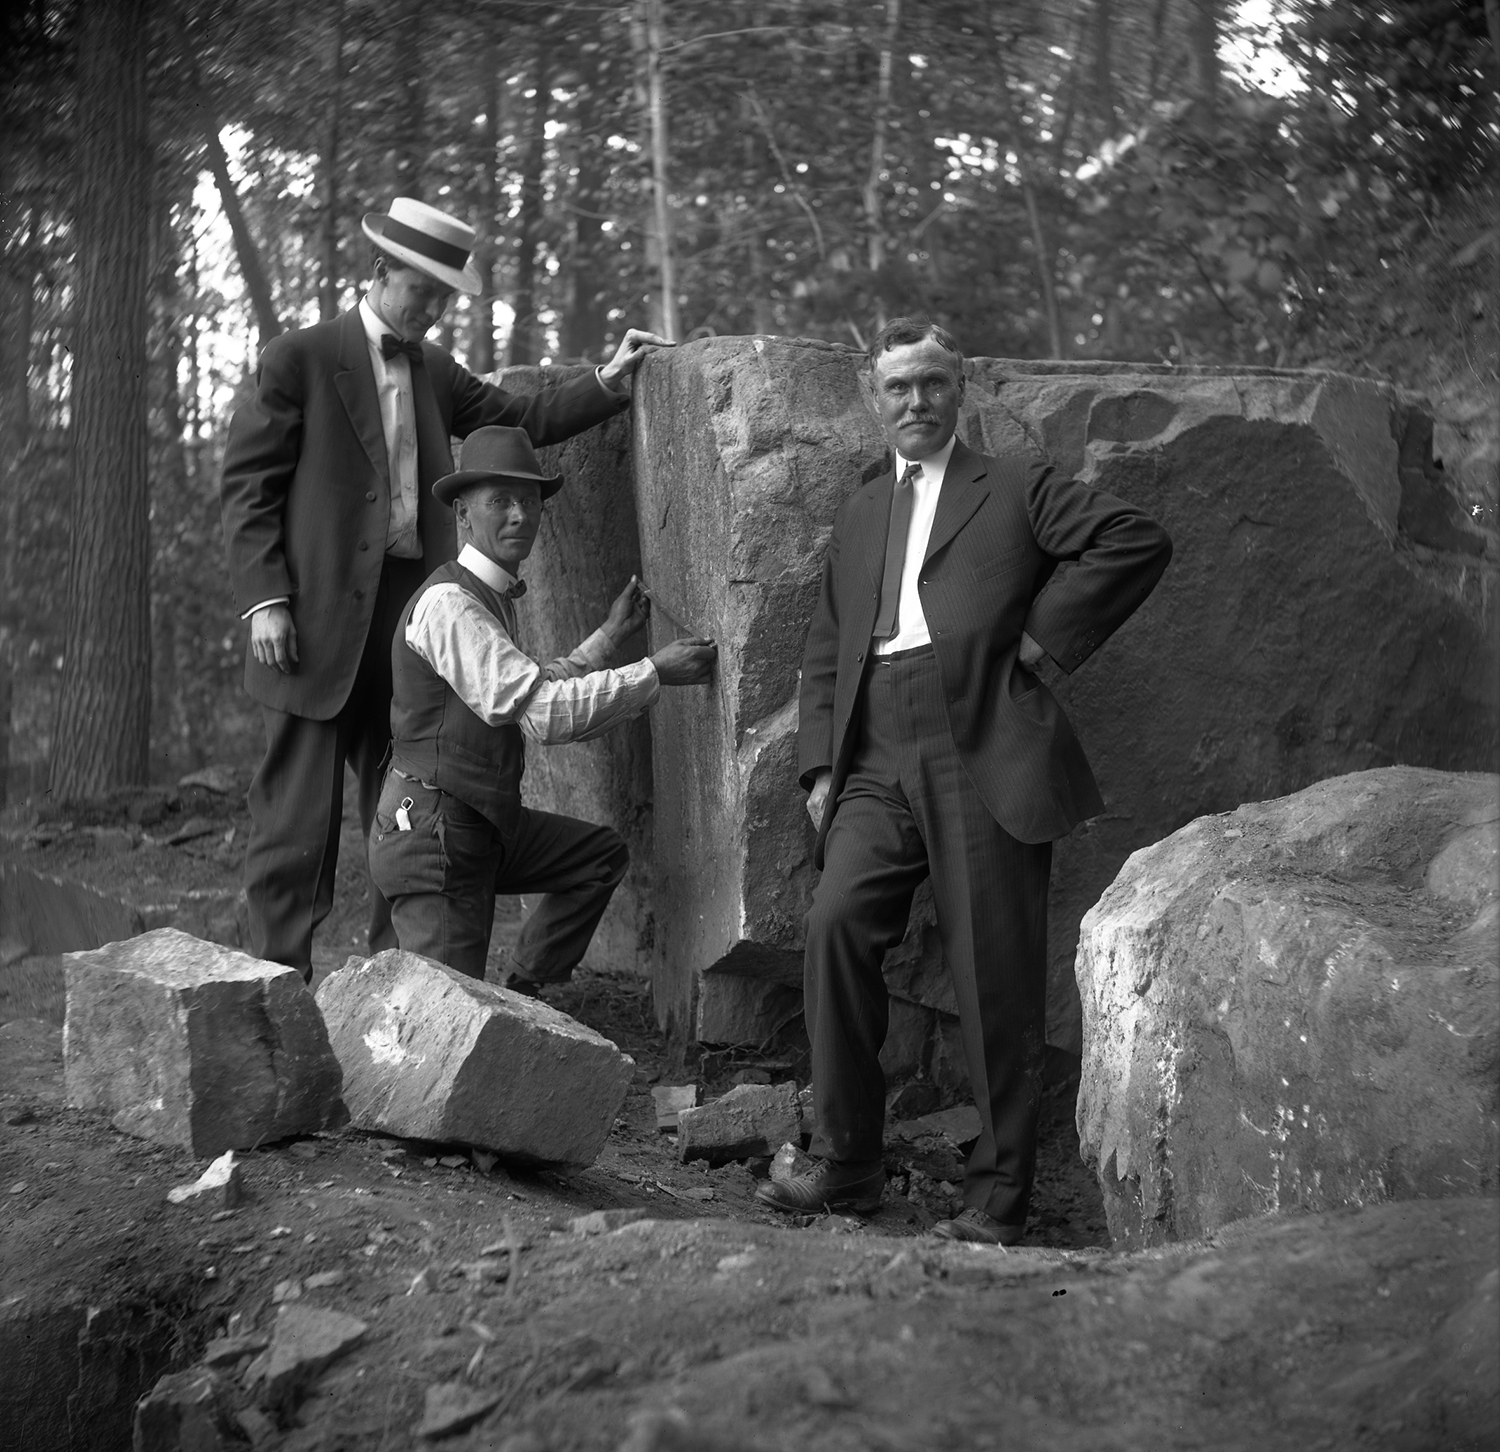 Figure 1: From left to right, Raymond Pitcairn, Edward Kessel, and Pringle Borthwick measure the cornerstone before it is split from the larger boulder.